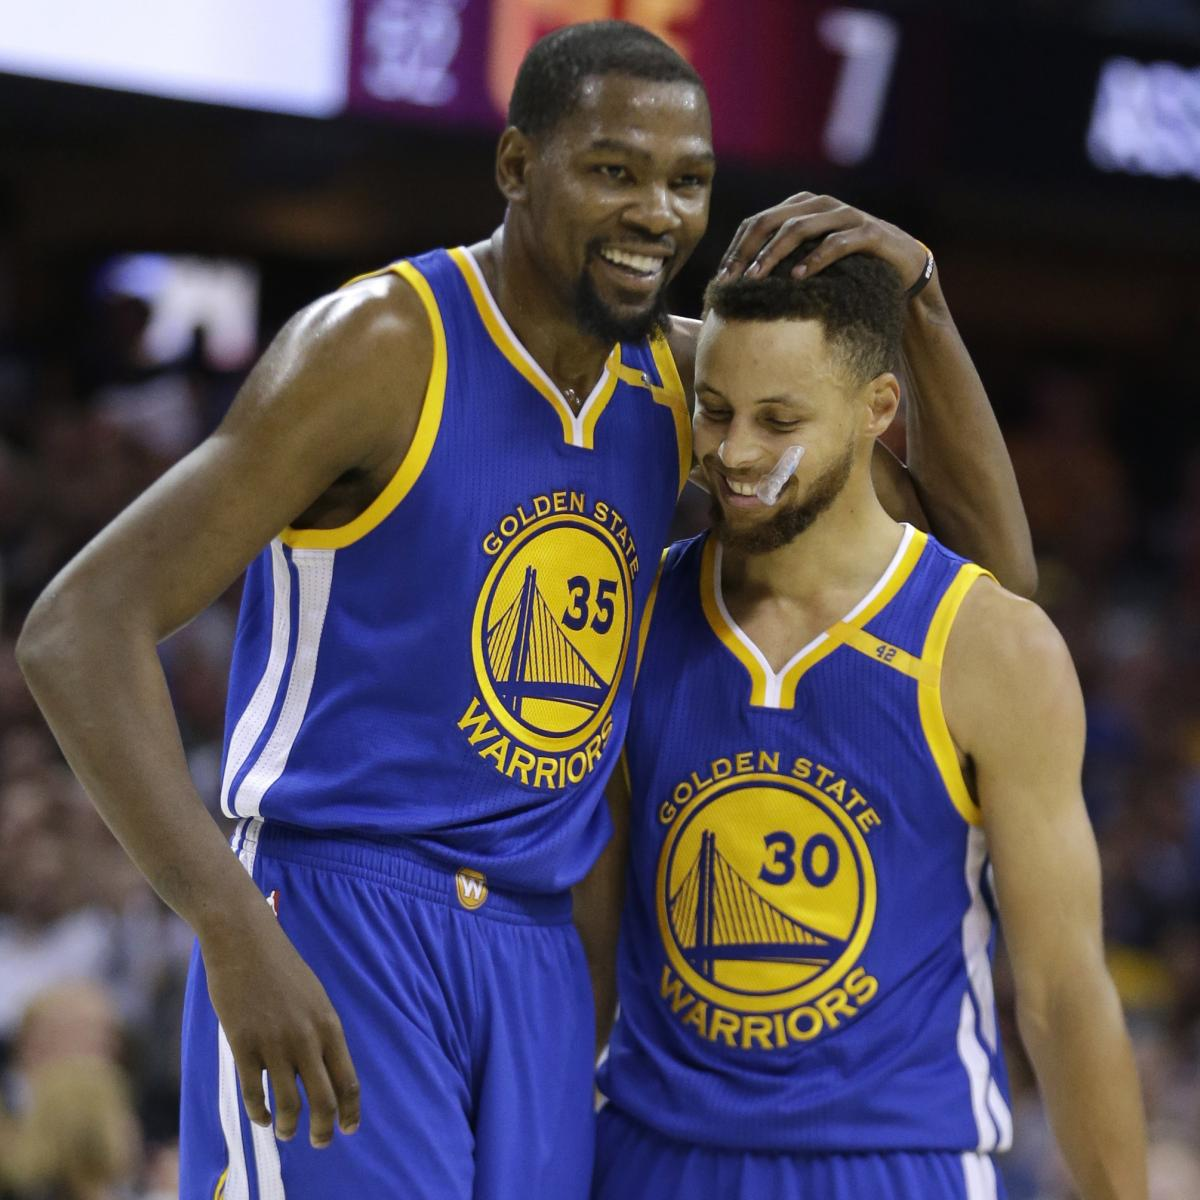 Warriors New Stadium Season Tickets: Warriors' Season Tickets To Require Fans To Buy 30-Year